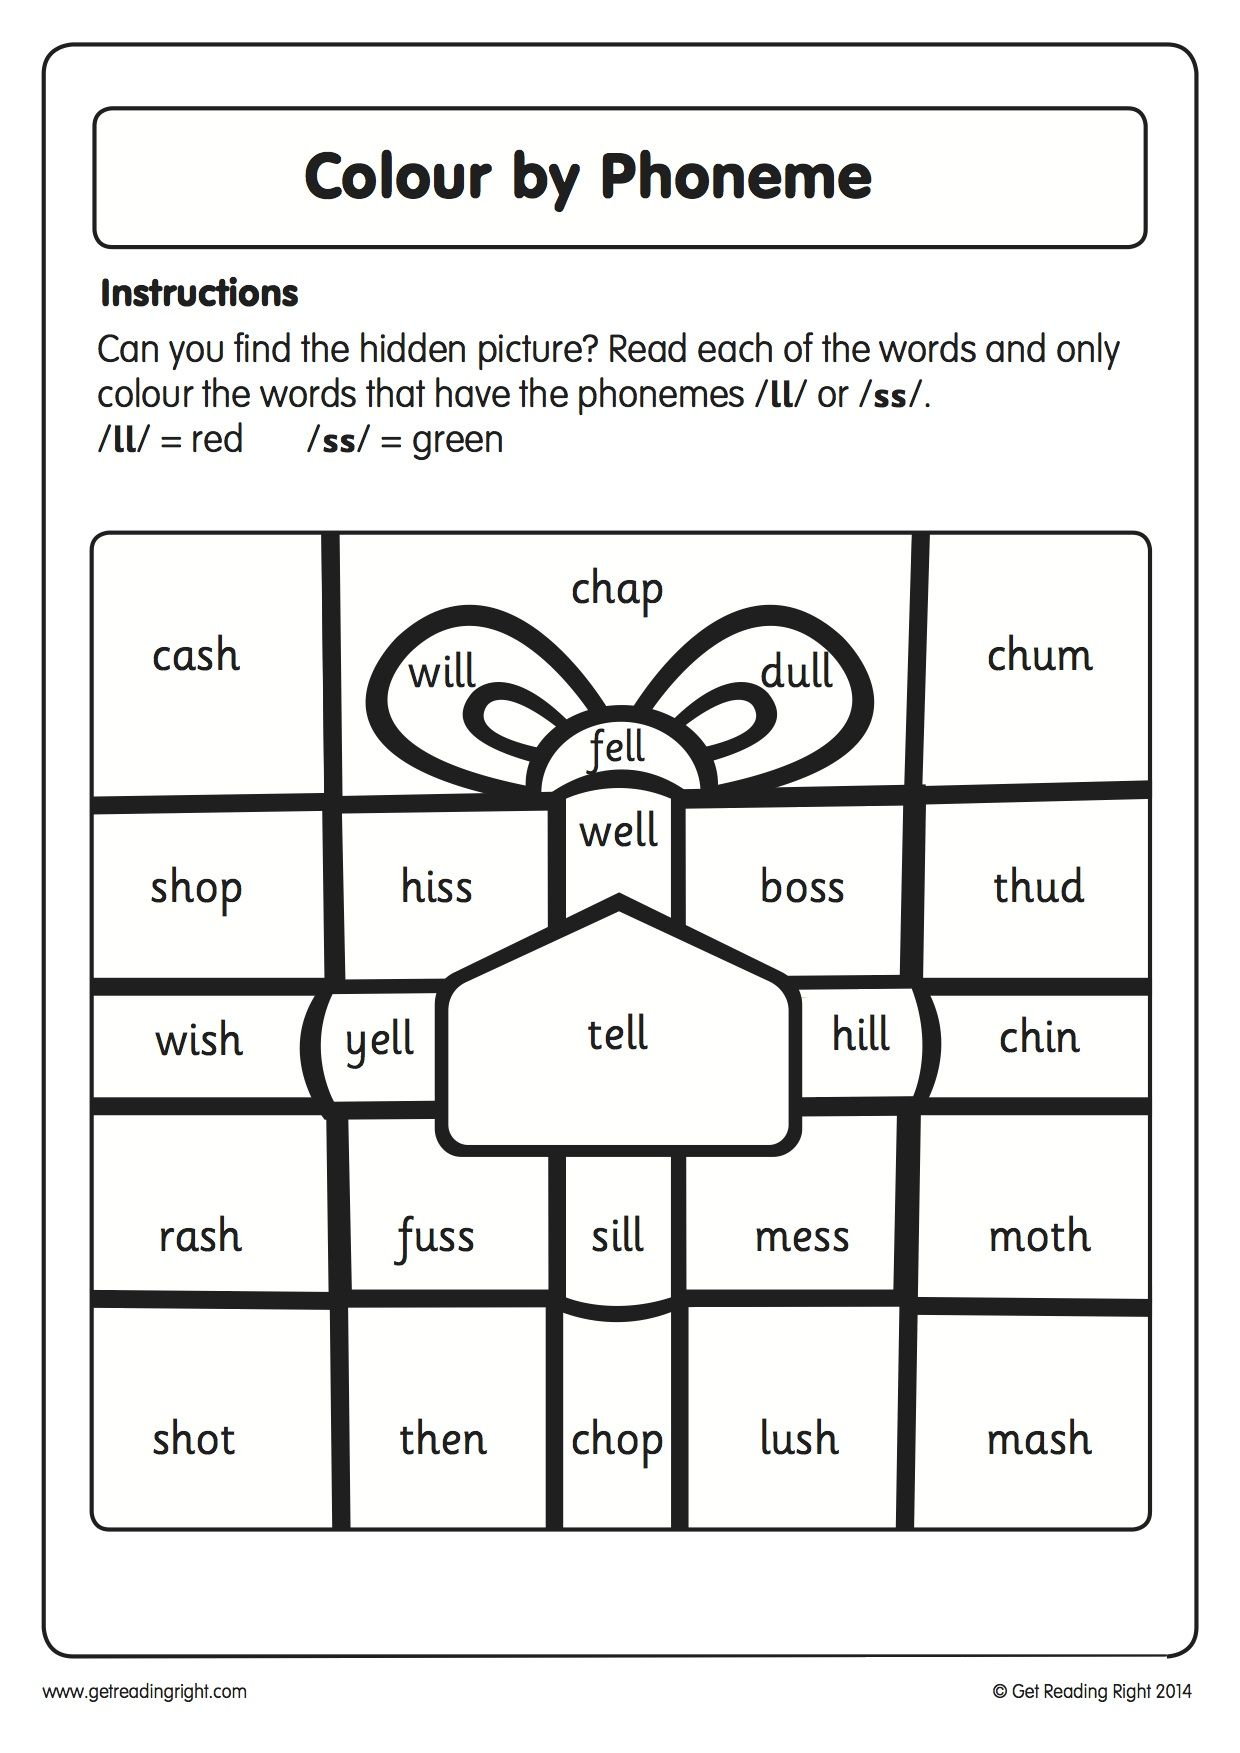 Our Colour By Phoneme Worksheet Is Designed To Help Children Practise Their Decoding And